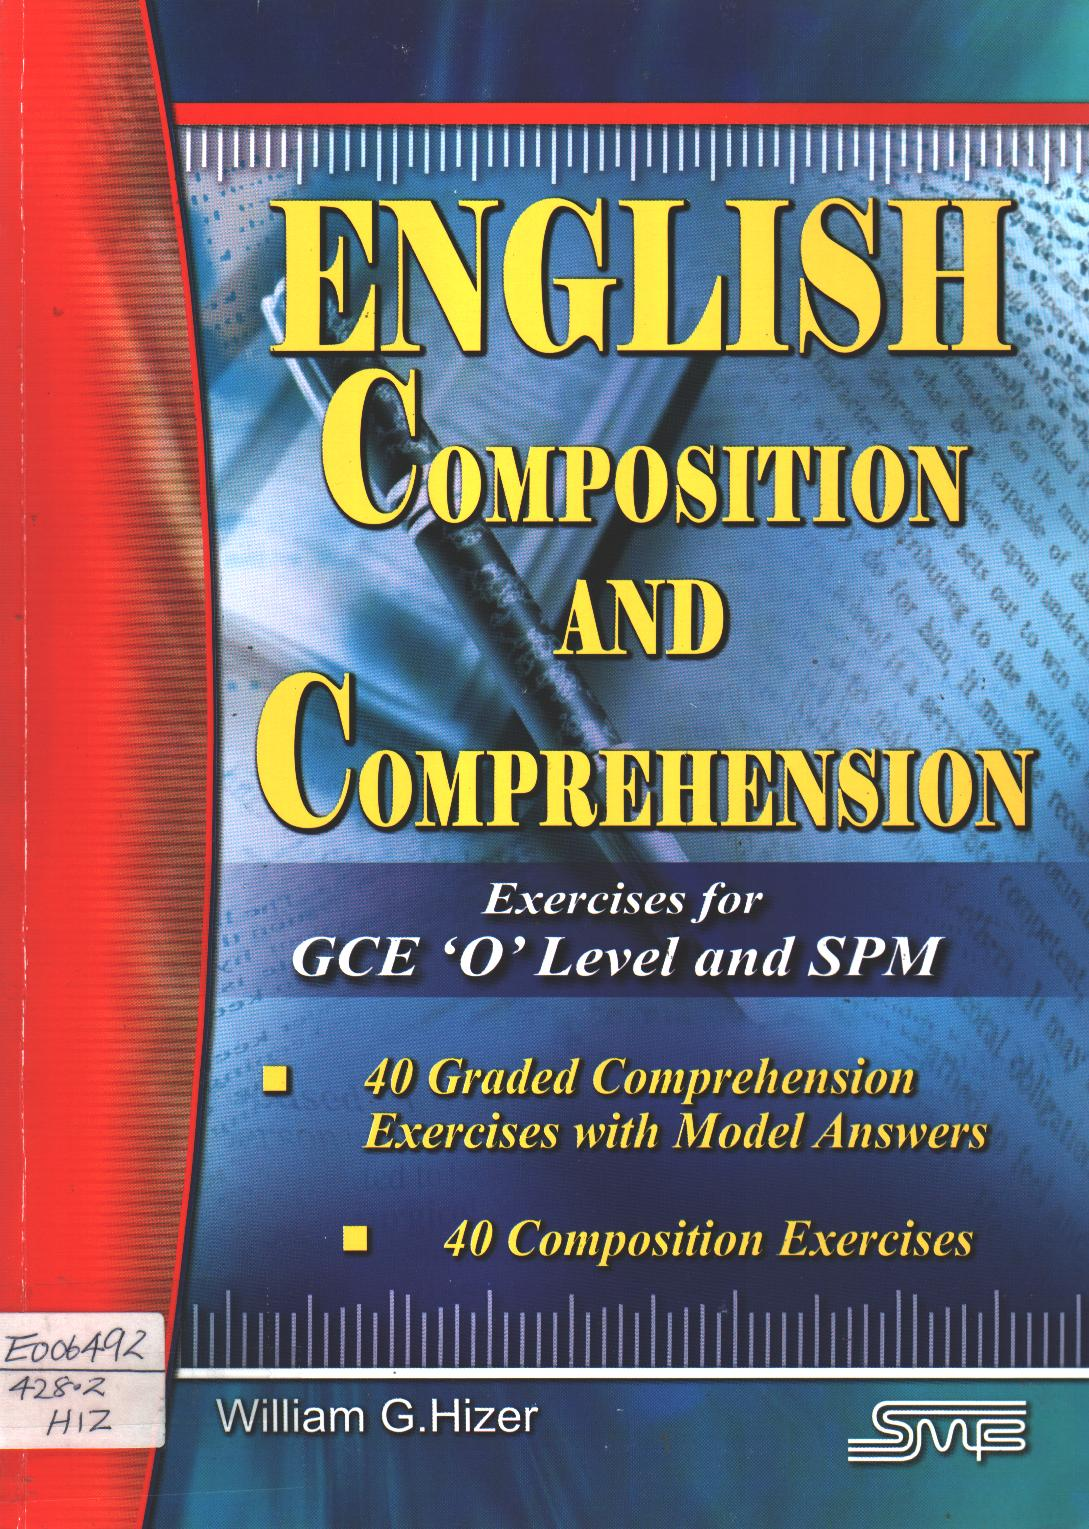 English Composition and Comprehension for GCE 'O' Level and SPM